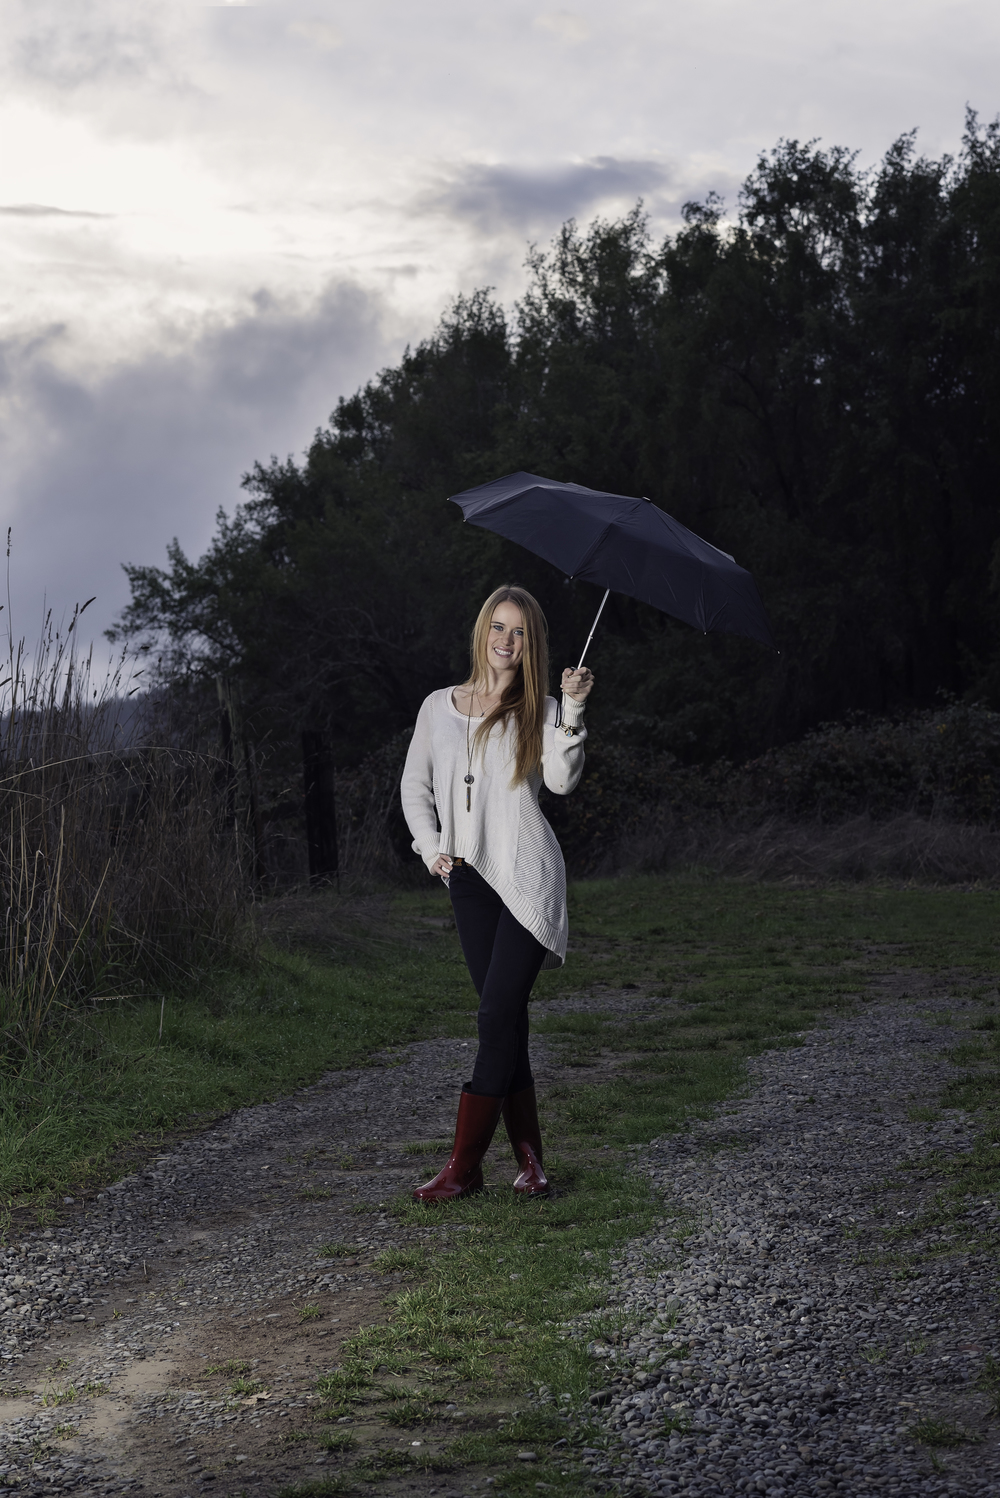 Senior-Portrait-Umbrella-Rain-Red-Rain-Boots-Smiles-Happy-Garberville-California-Southern-Humboldt-Community-Park-Country-Girl-Gravel-Path-Dirt-Road